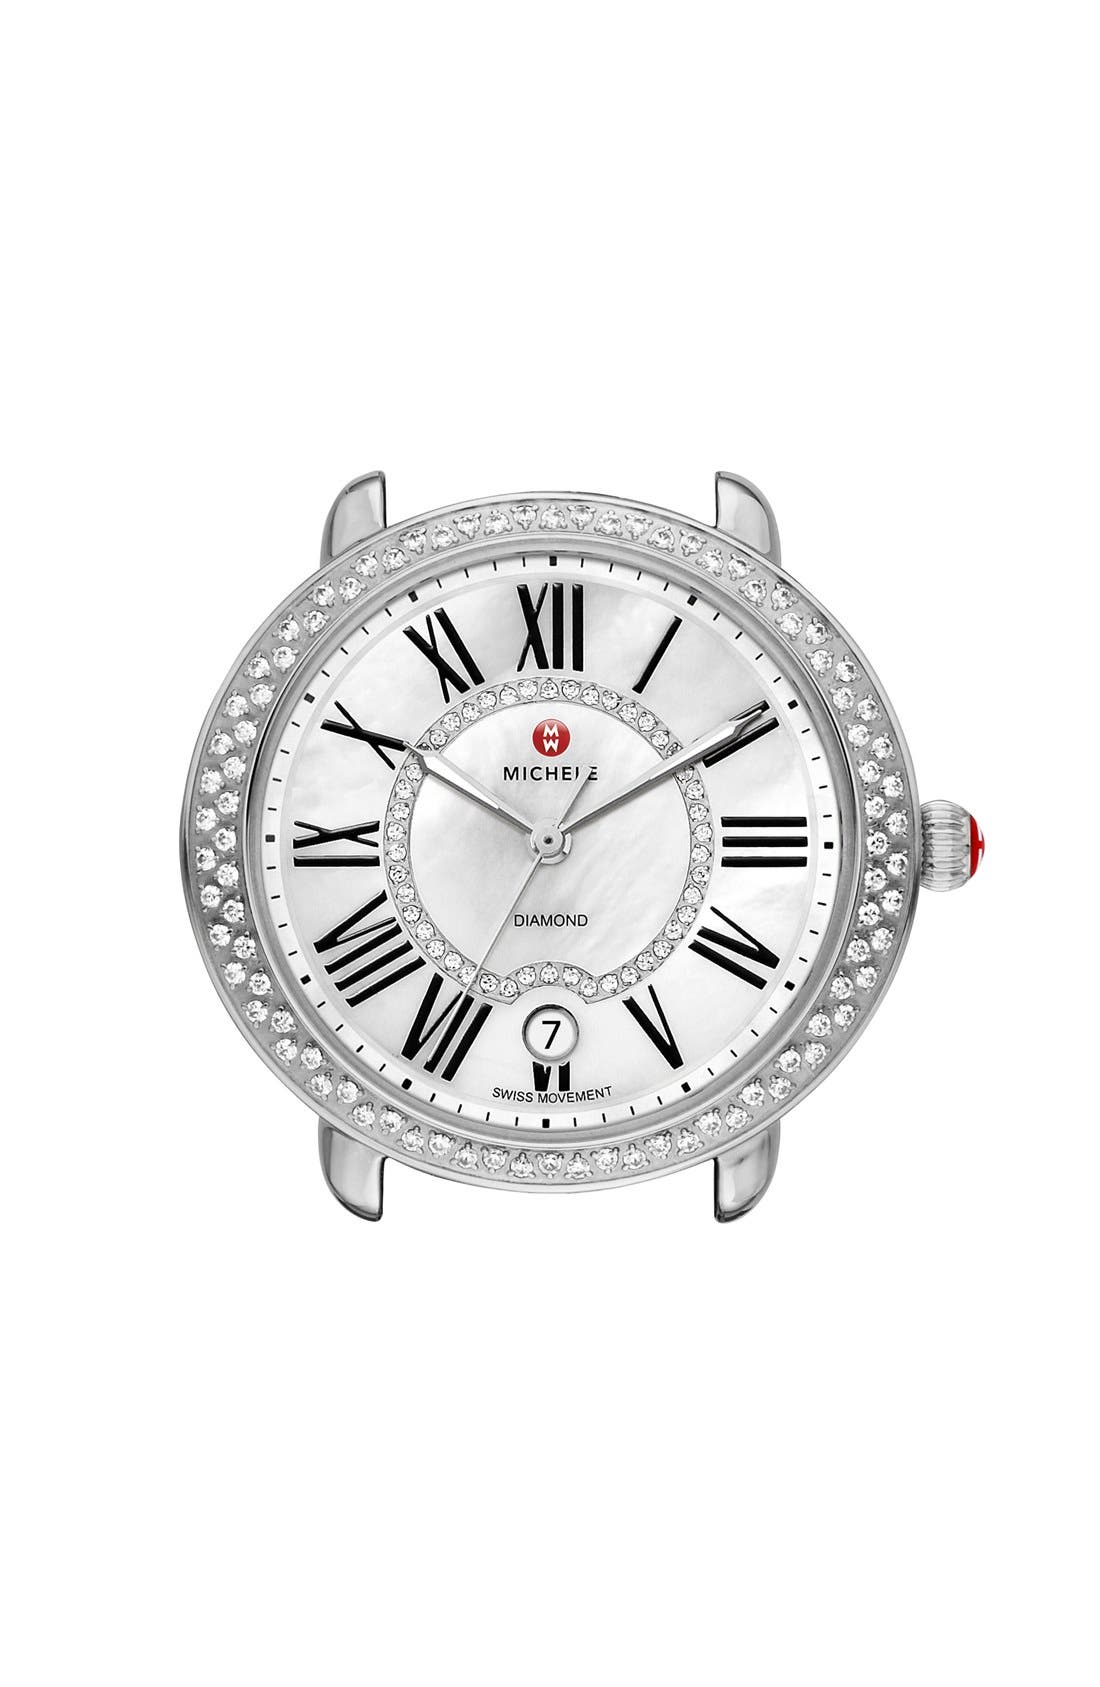 MICHELE, Serein 16 Diamond Watch Case, 34mm x 36mm, Main thumbnail 1, color, SILVER/ WHITE